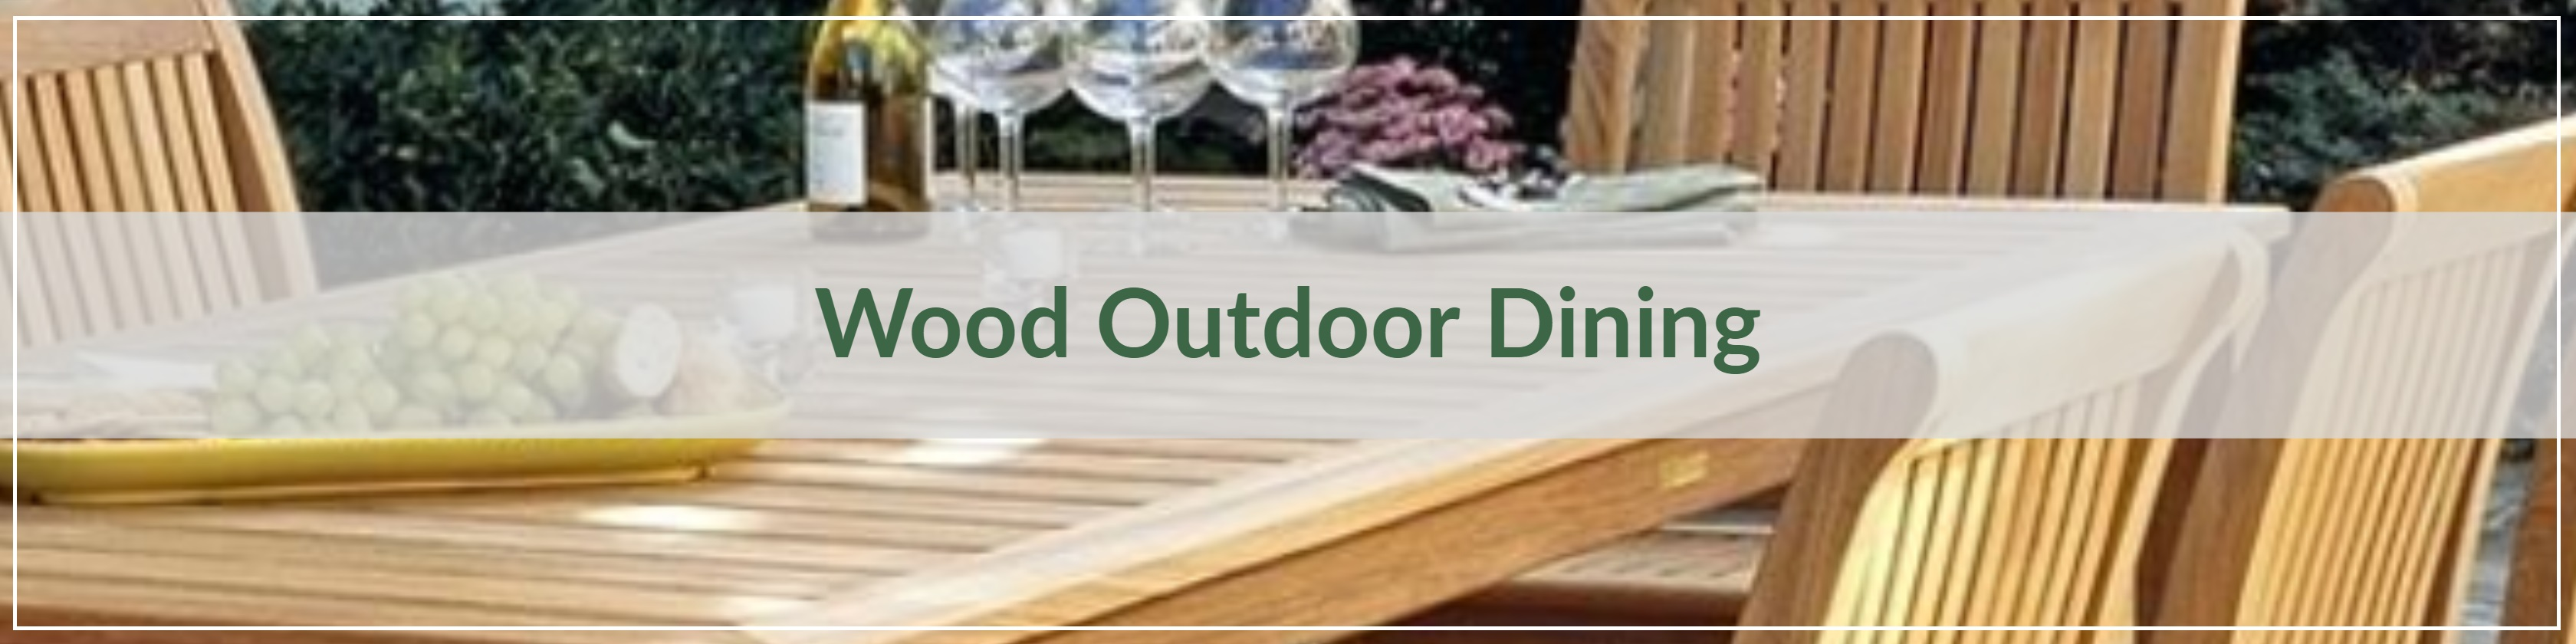 Wood Outdoor Dining